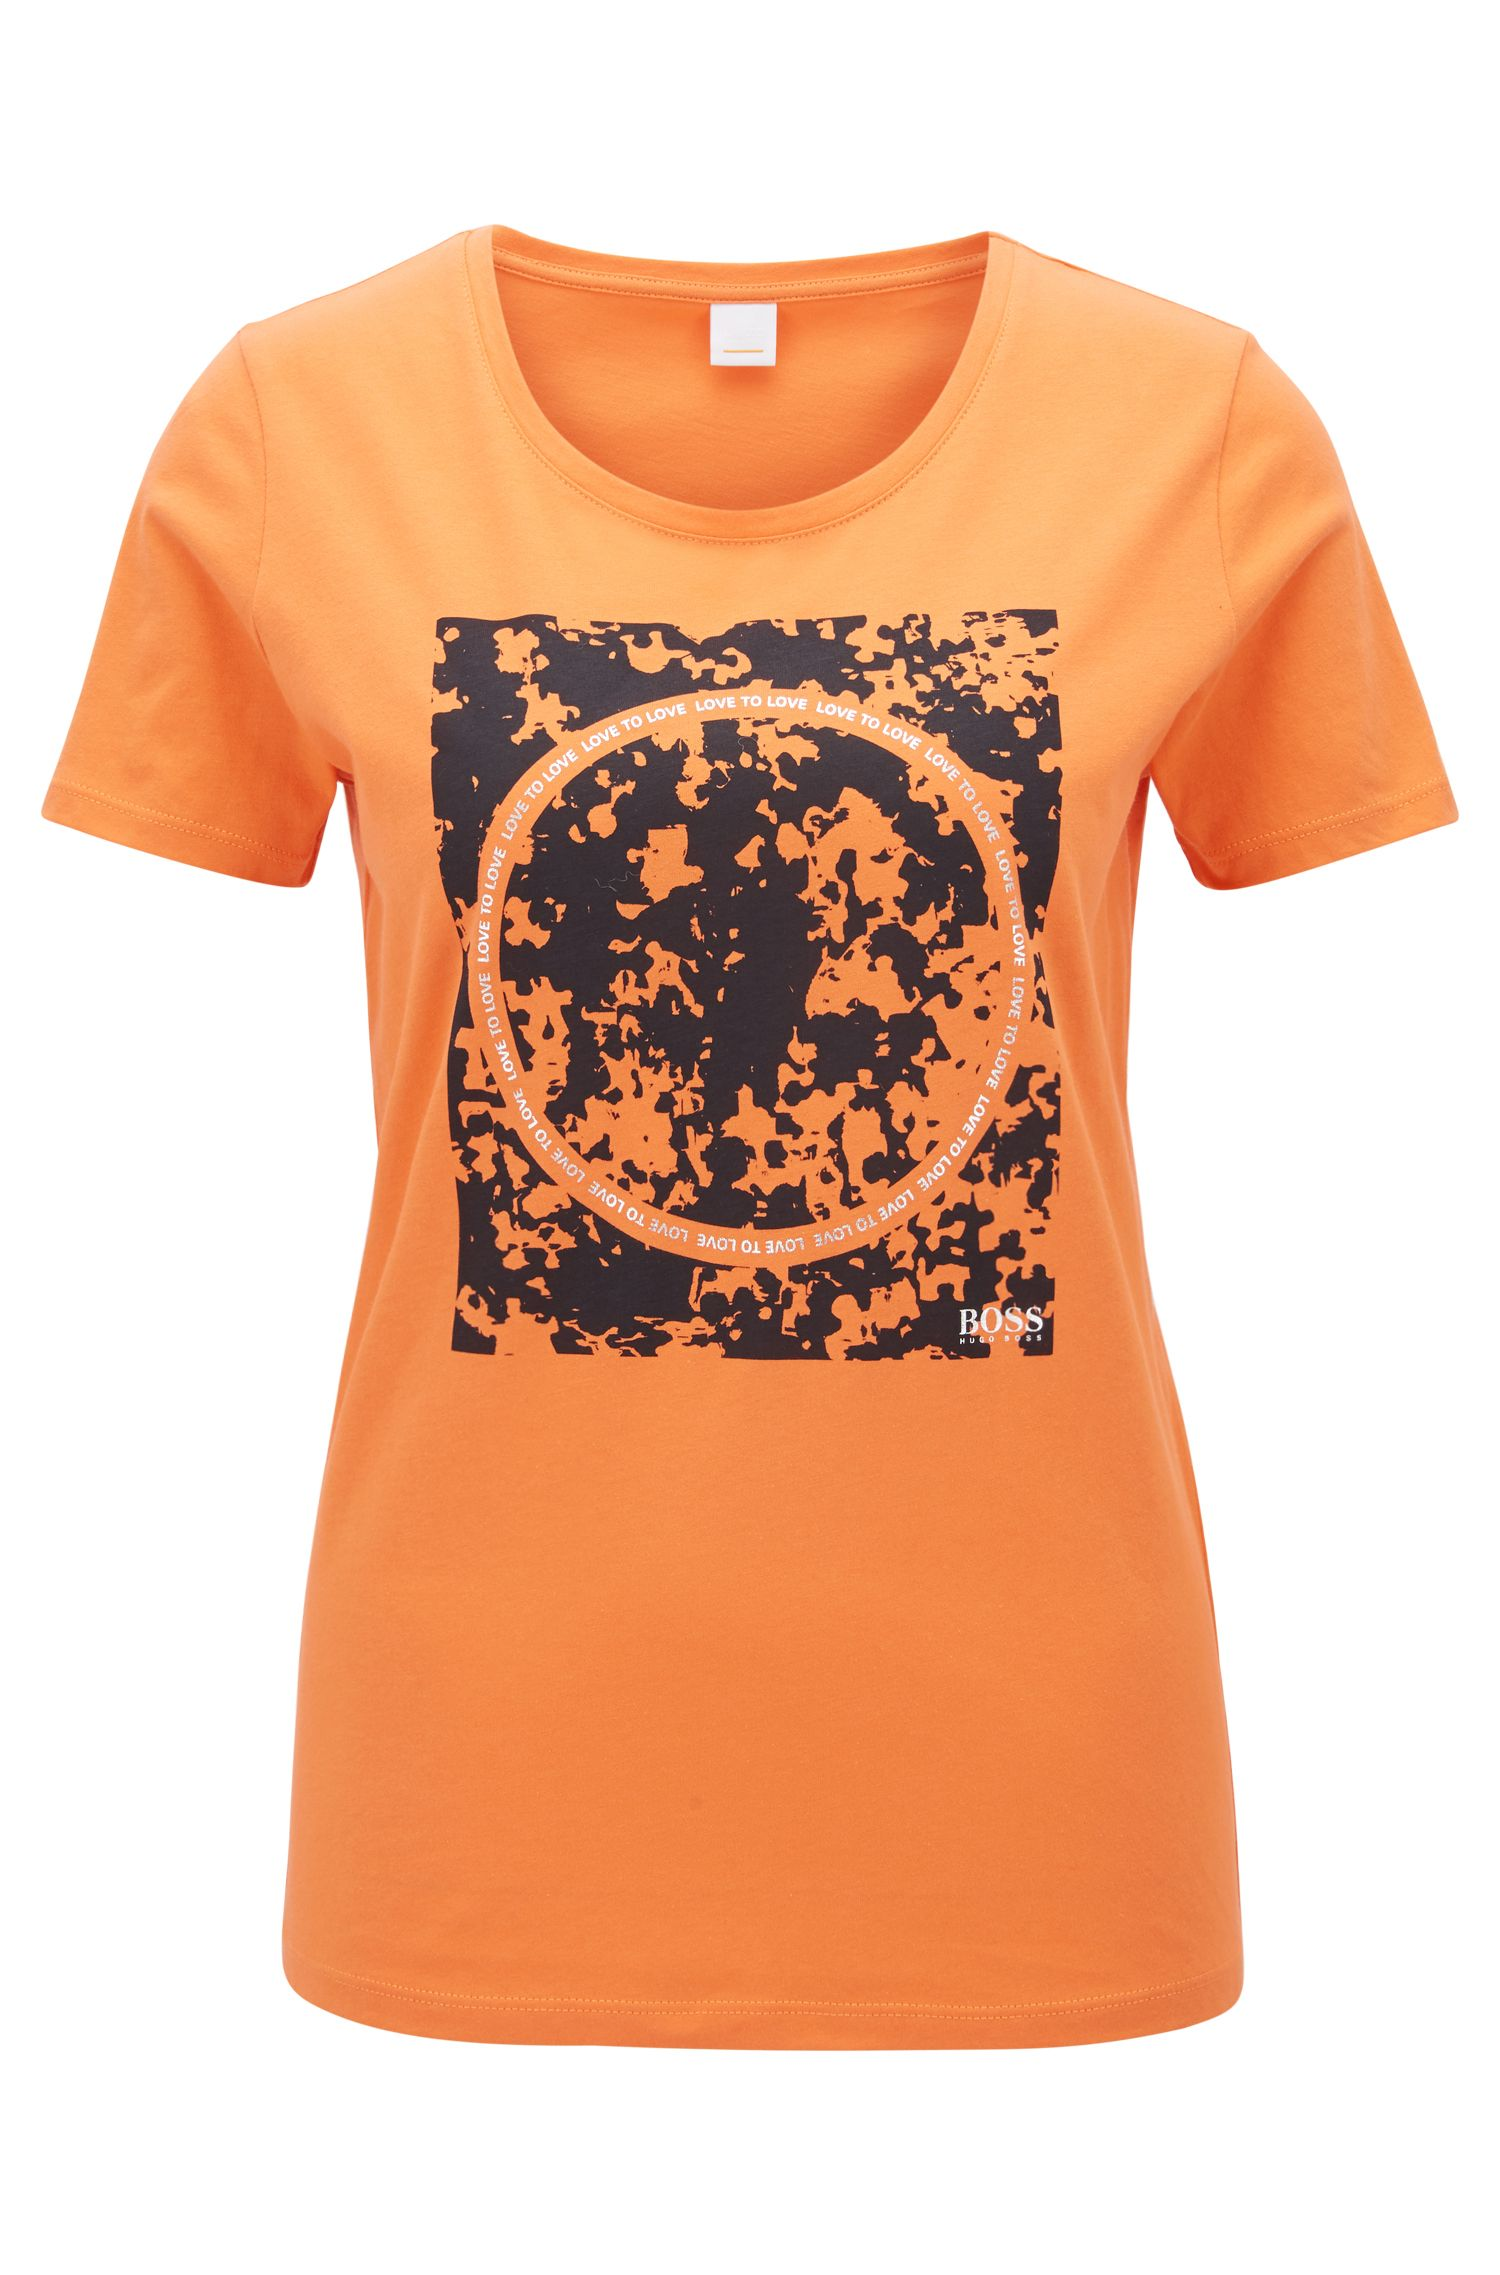 Slim-Fit T-Shirt aus Baumwolle mit Print, Orange